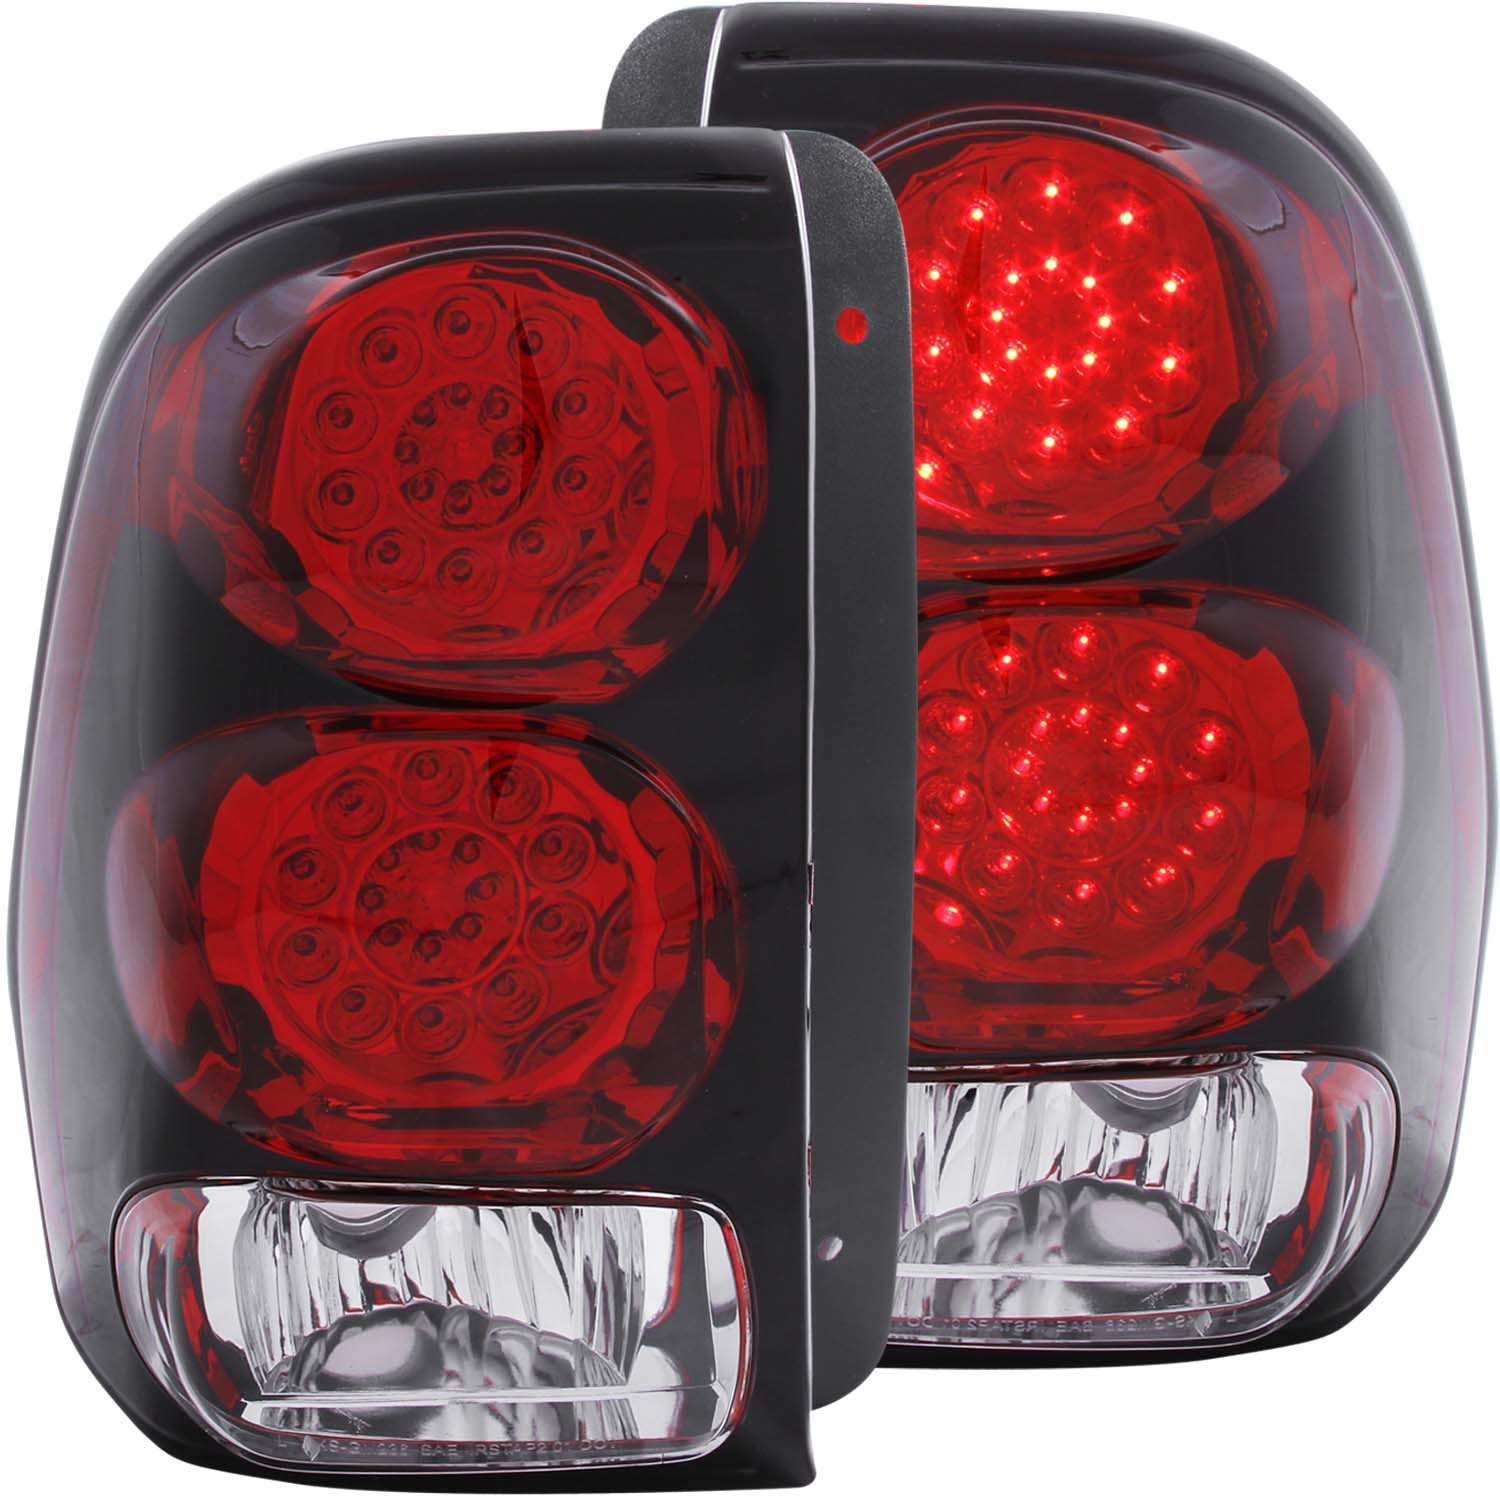 Details About Fits 02 09 Chevrolet Trailblazer Tail Lights Left Right Pair W Red Clear Lens